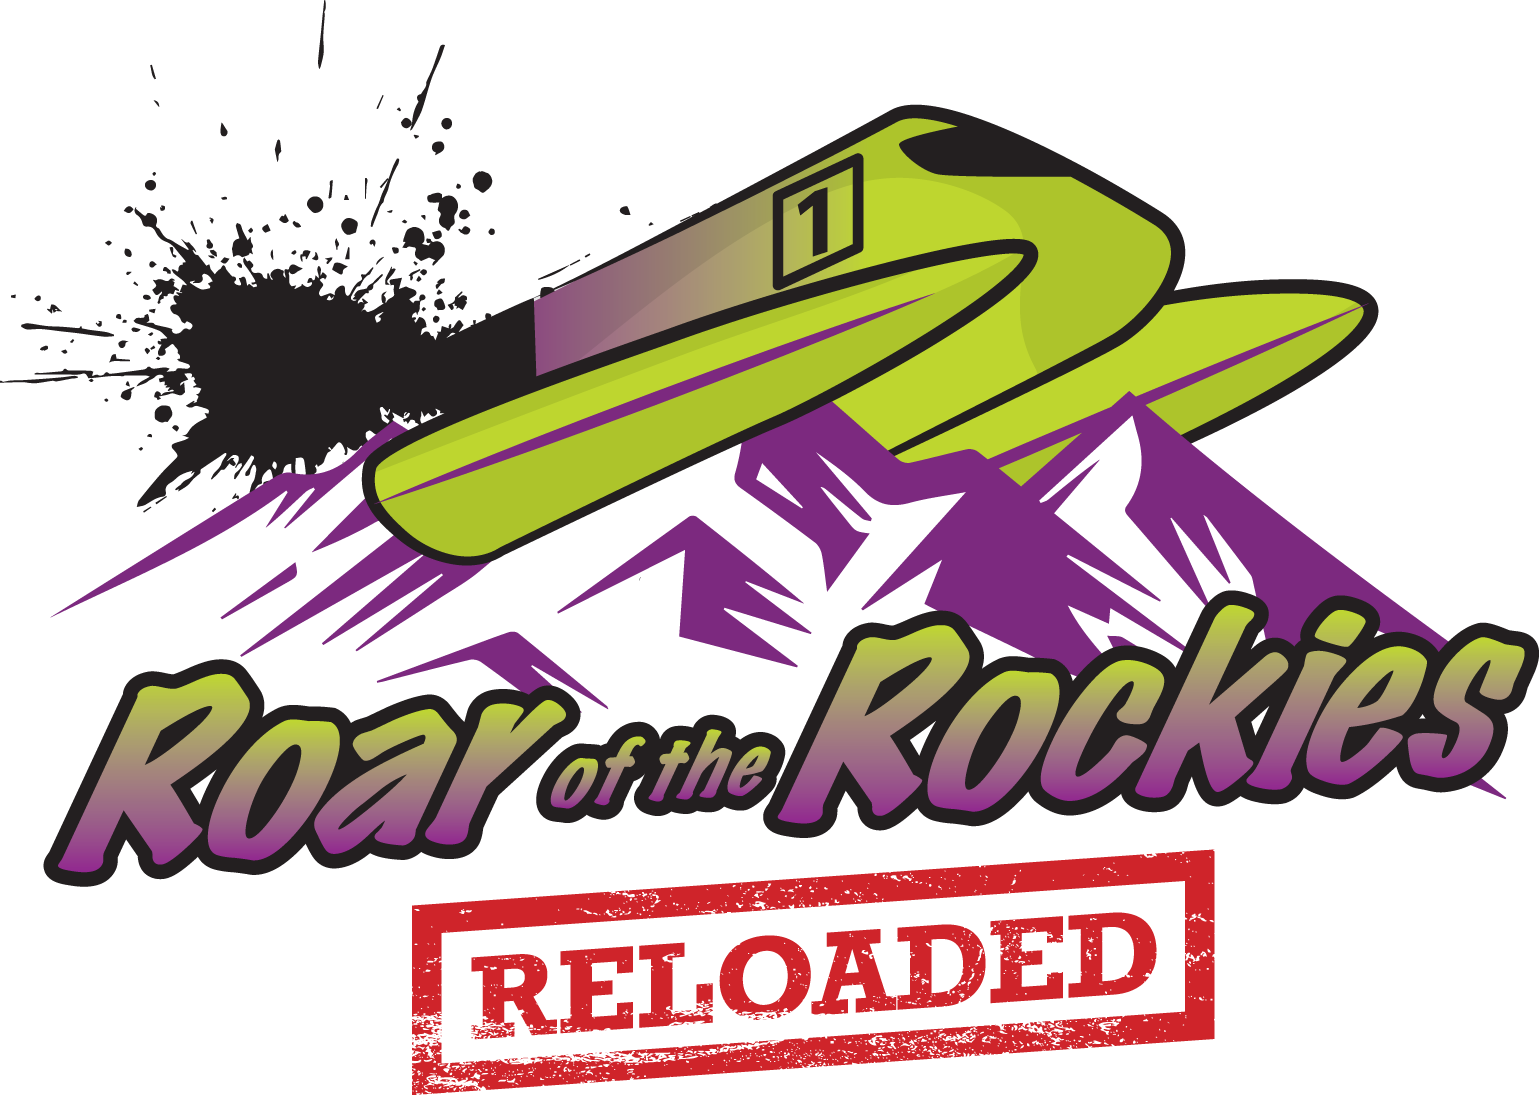 roar-rockies-reloaded-logo